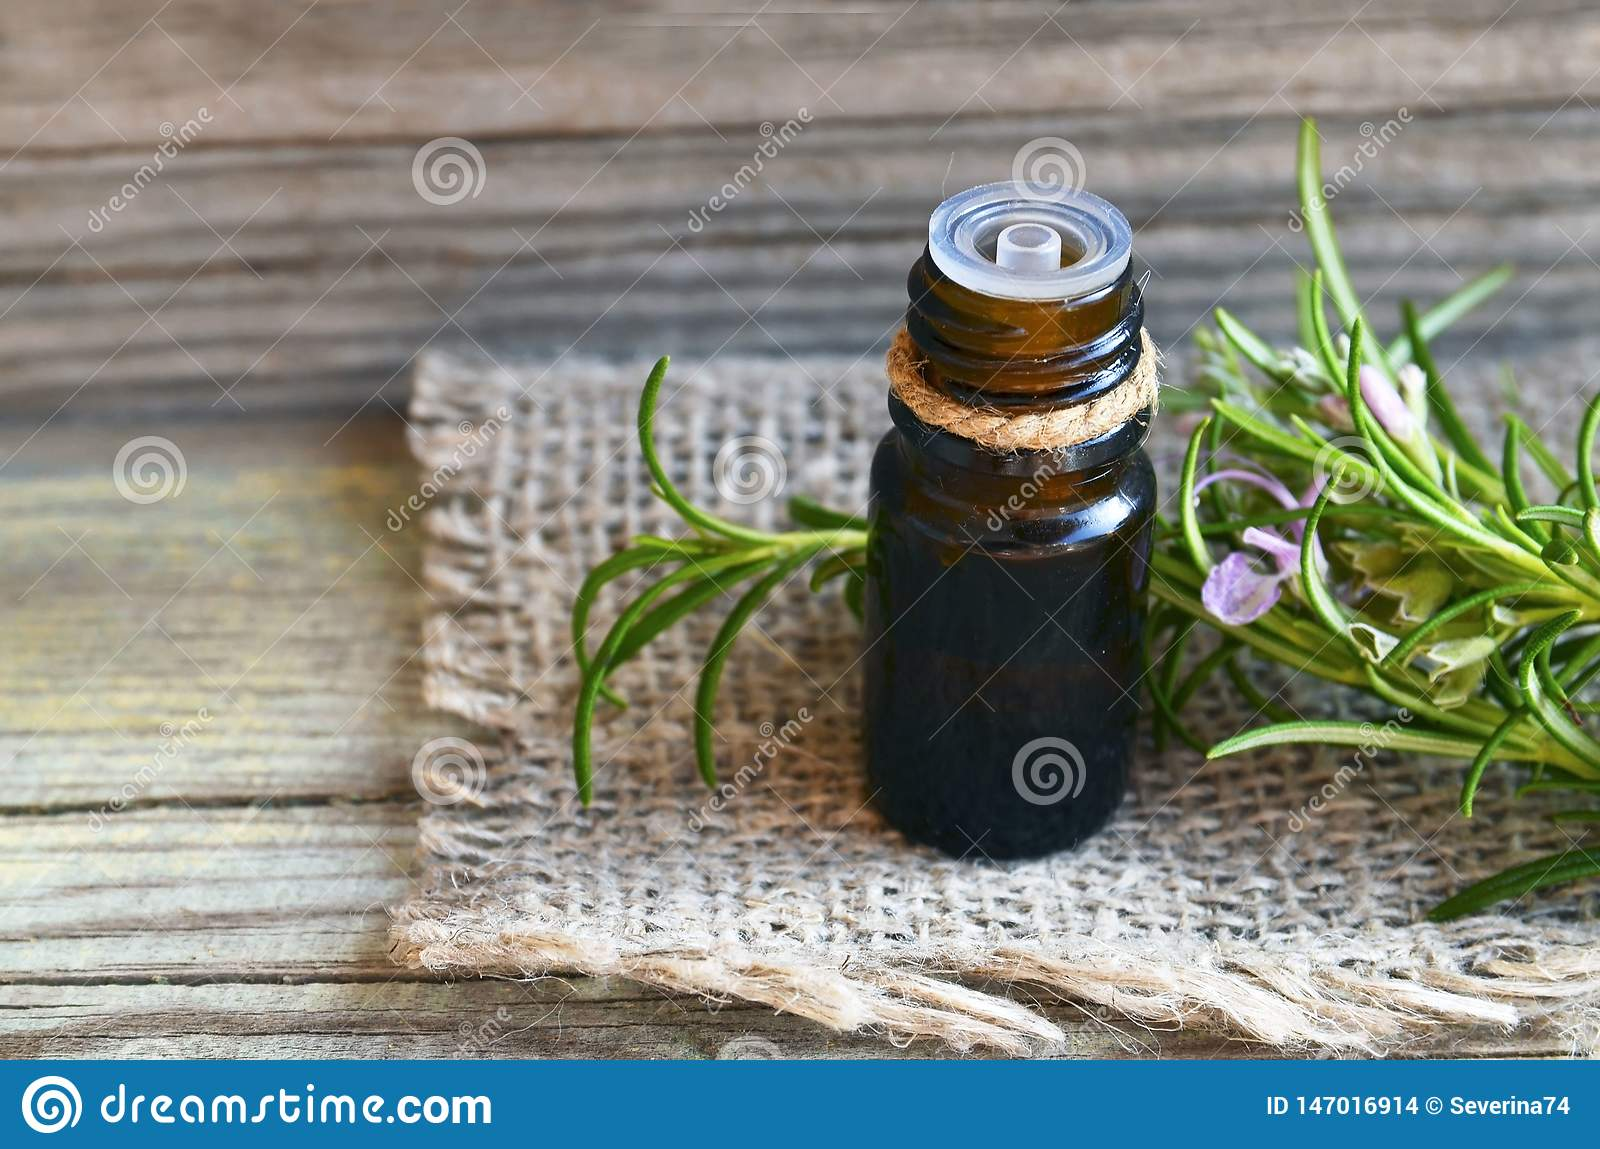 Rosemary essential oil in a glass dropper bottle with fresh green rosemary herb on old wooden table for spa,aromatherapy and body